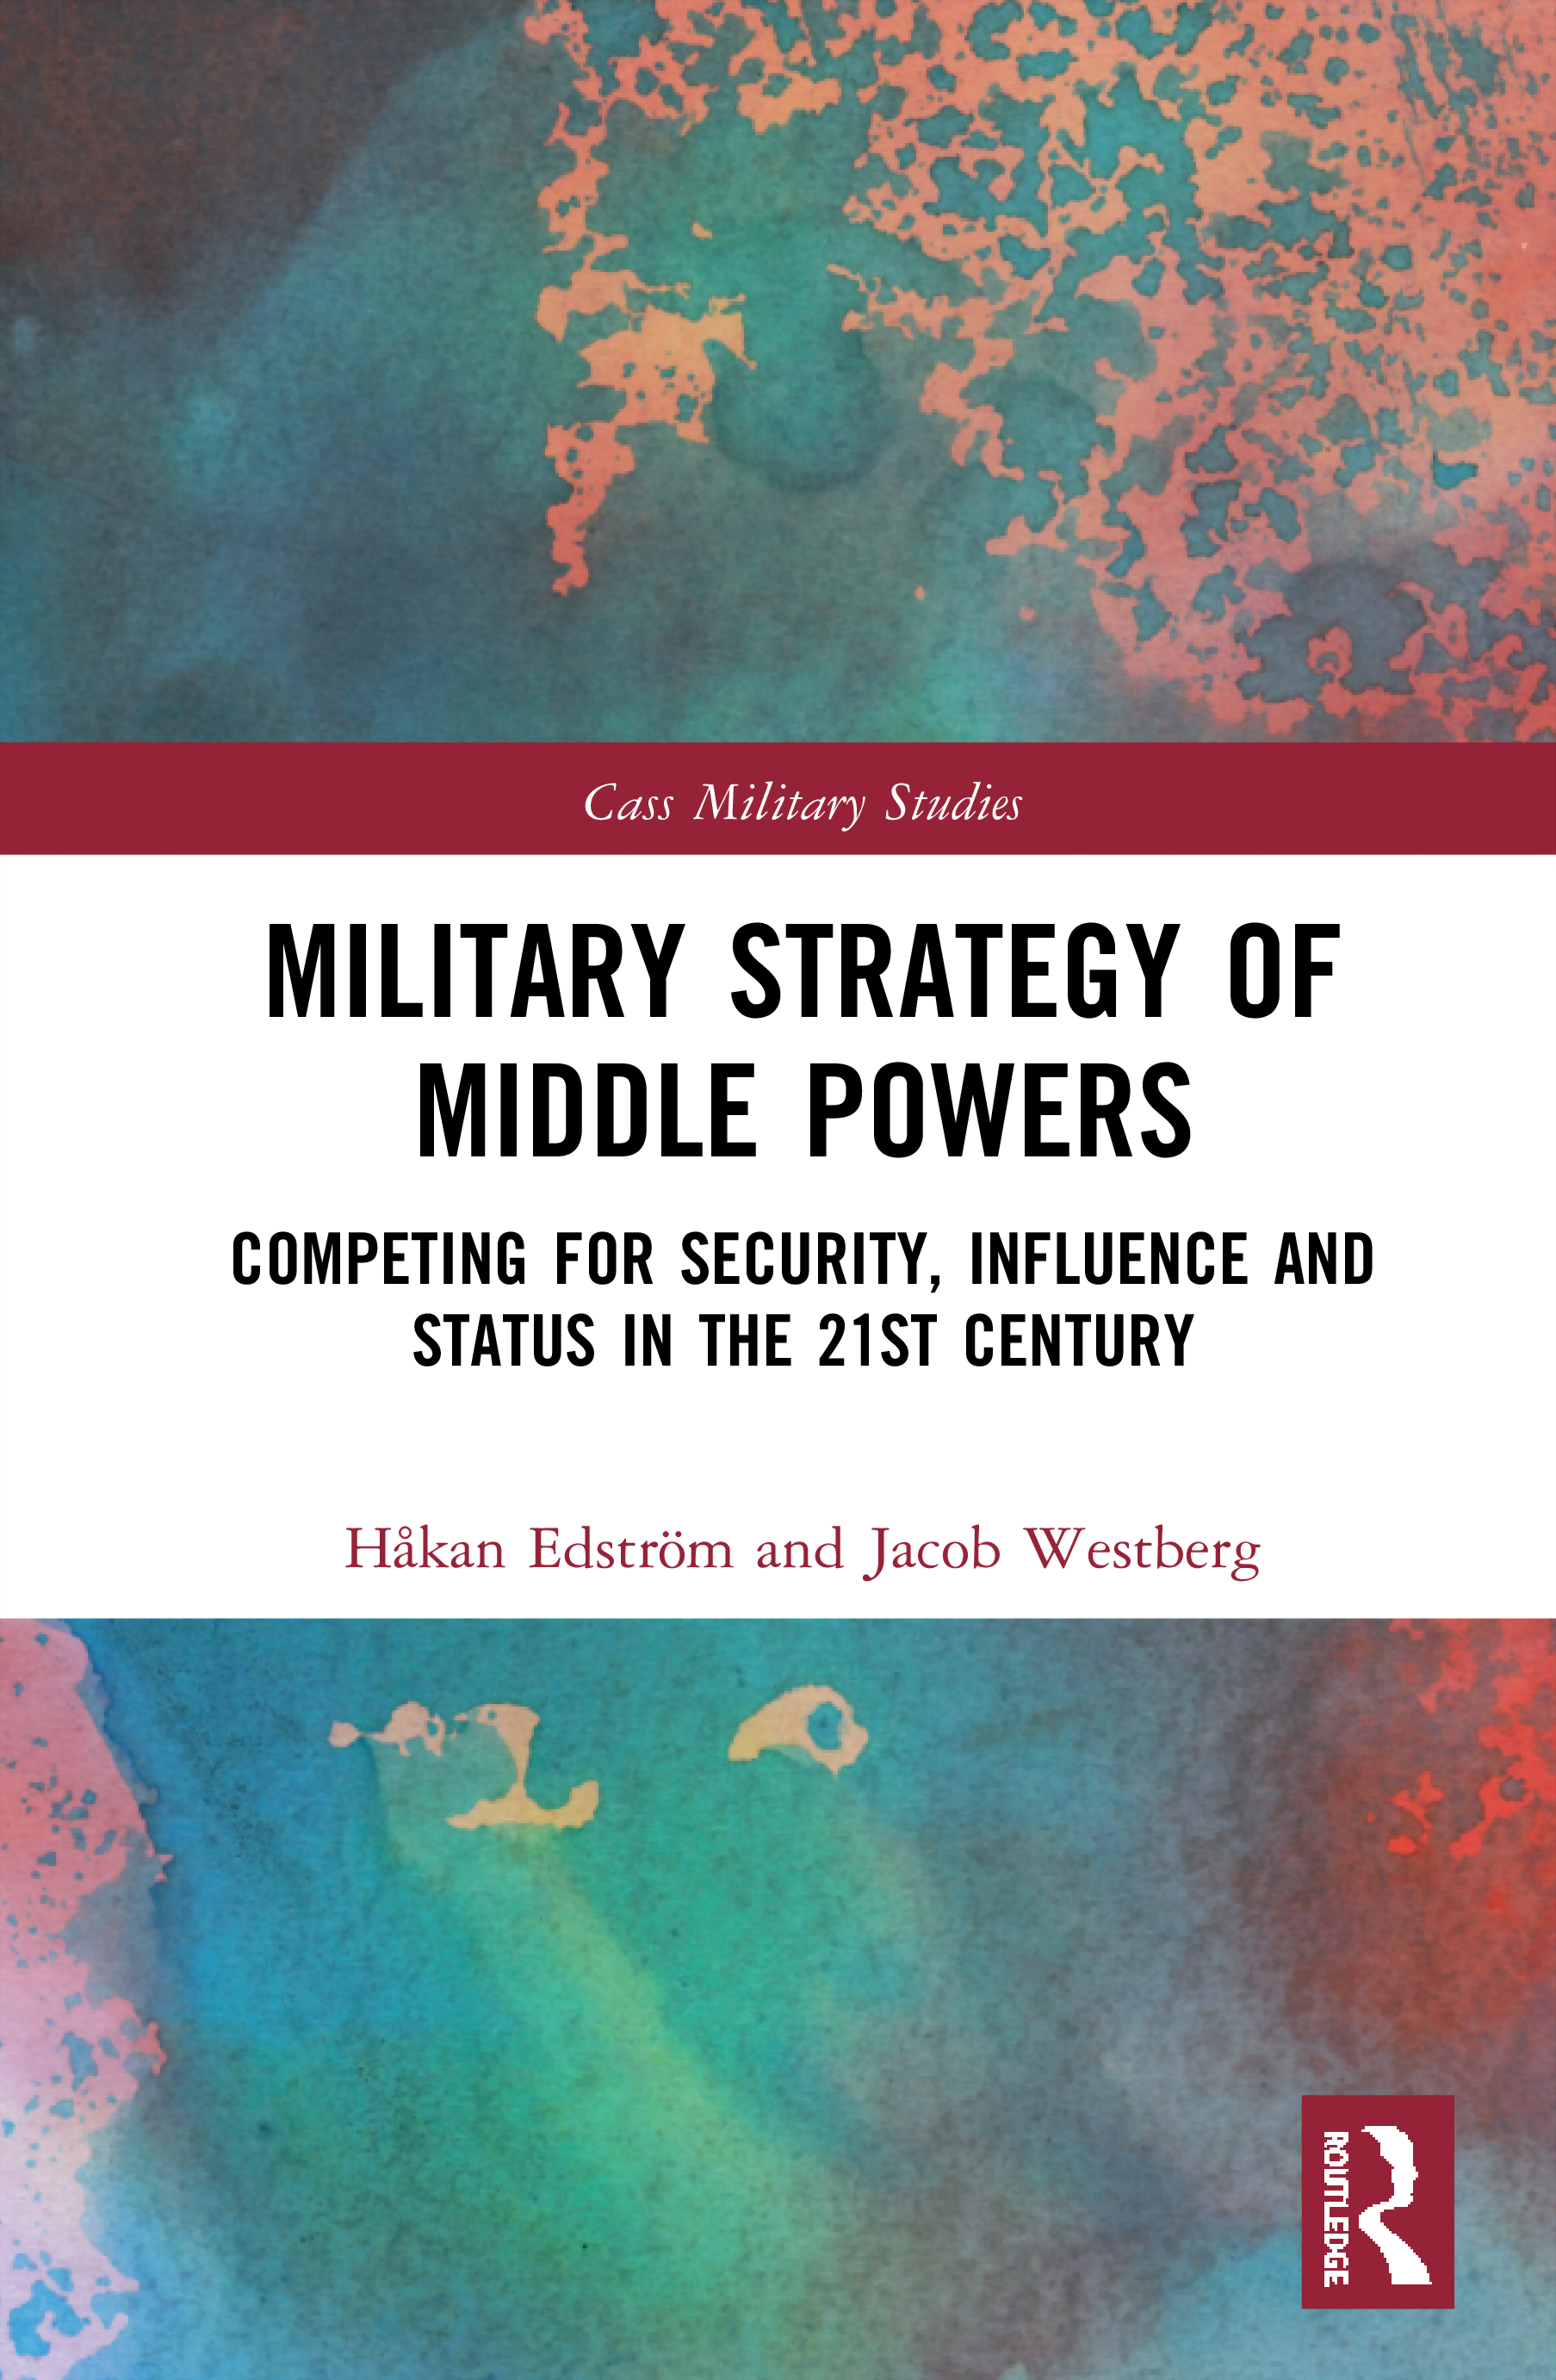 Military Strategy of Middle Powers